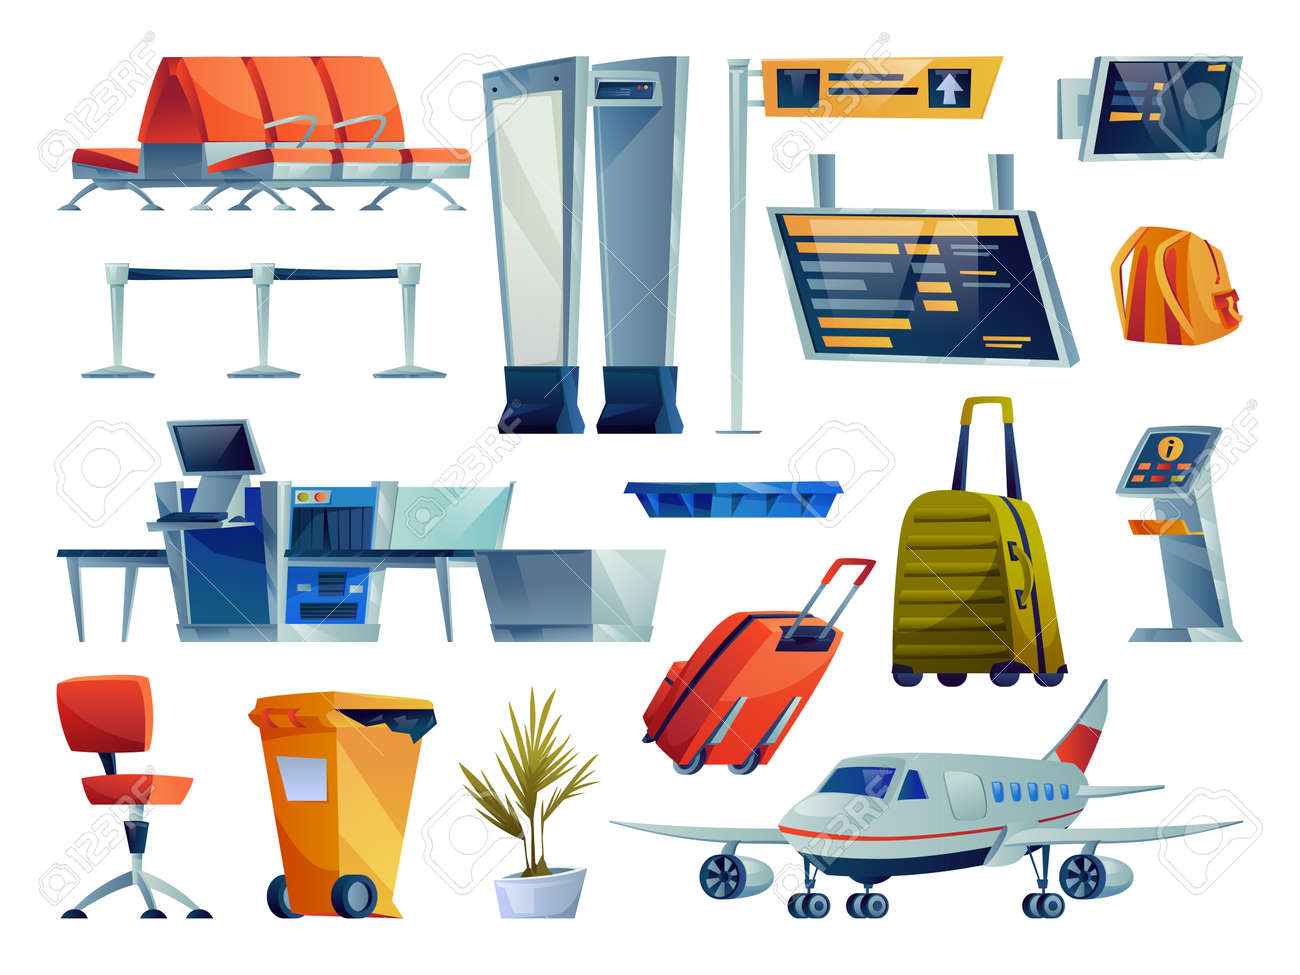 Set of airport cartoon icons isolated. Vector chairs seats row, boarding pass gates, check in boards and terminals. Plane, x-ray scan, luggage bags, litter container and plant, kiosk checking flight - 168336157